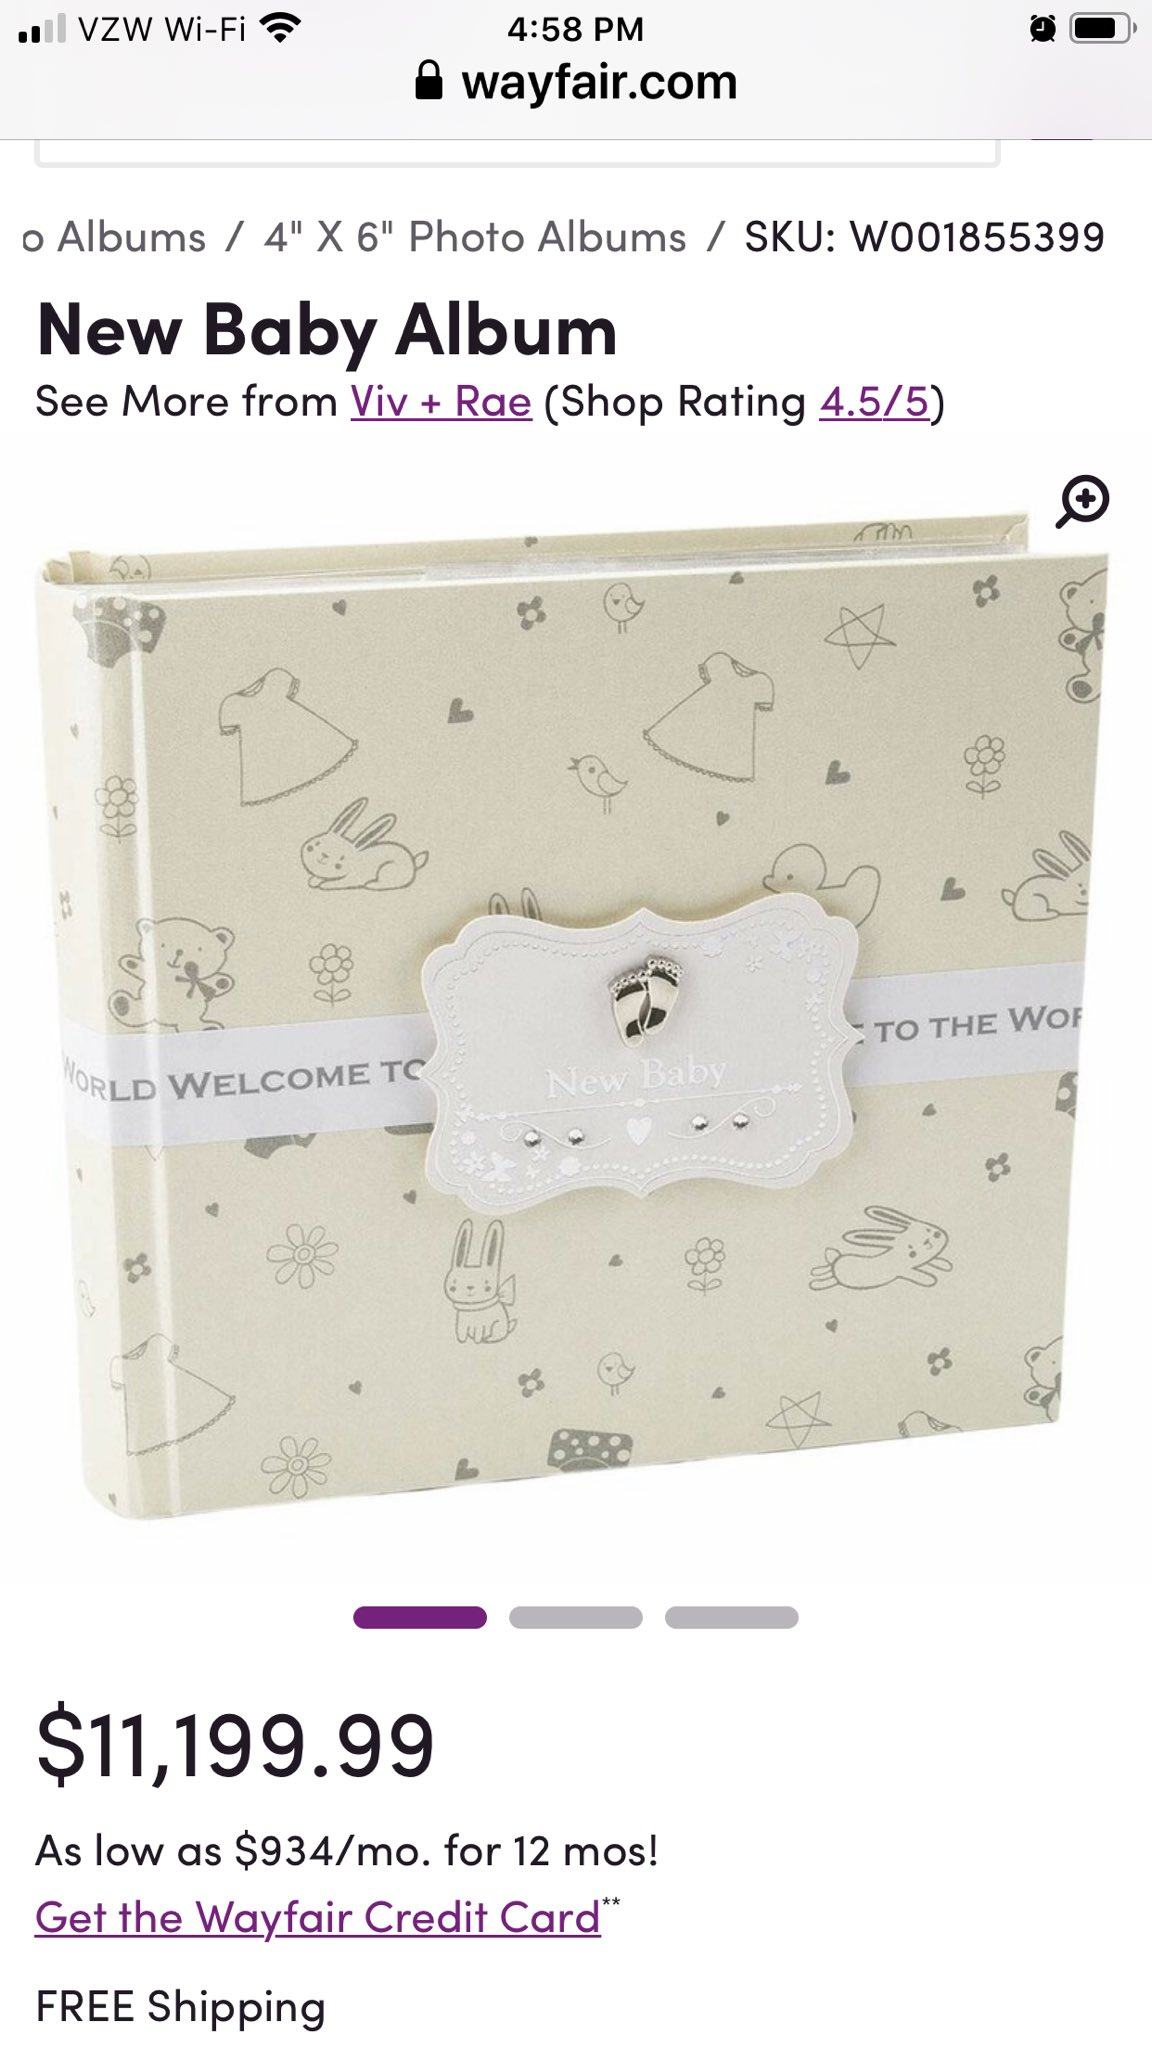 A baby album for $11,199.99